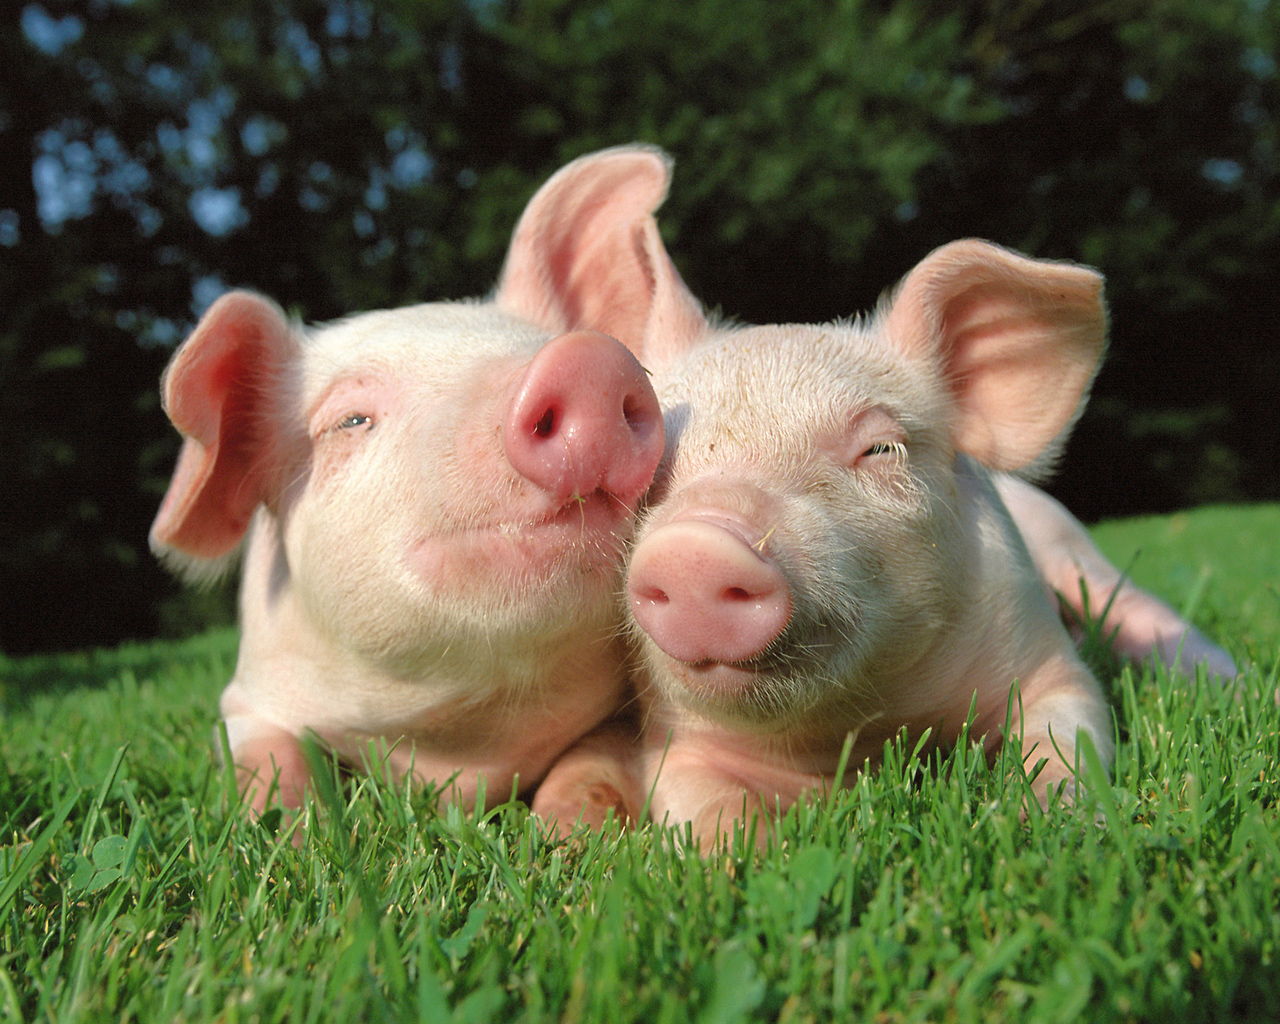 Pig brothers